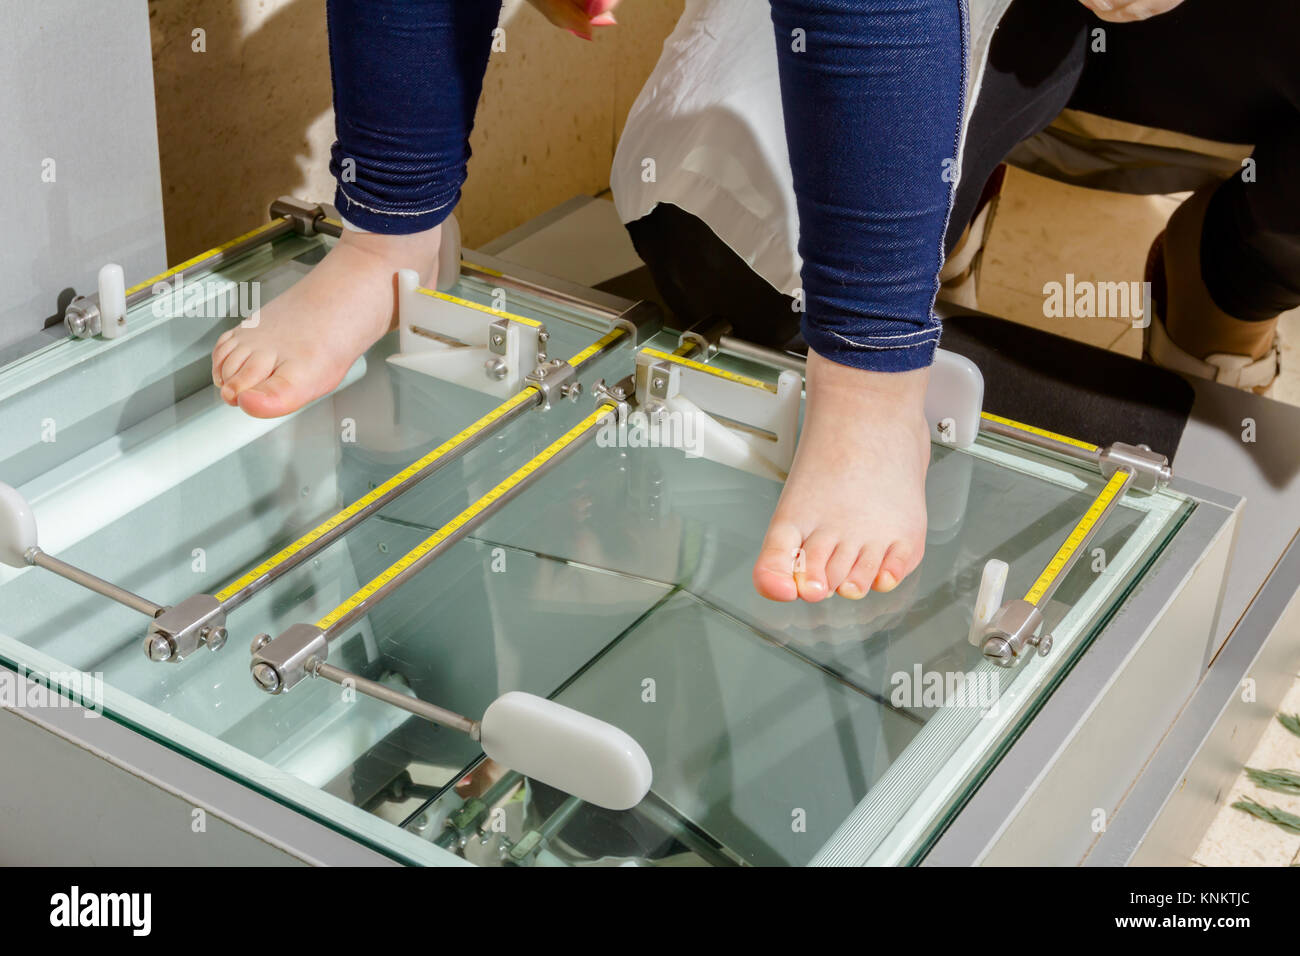 Doctor orthopedist is measuring child's foot with adjustable metal rulers. - Stock Image